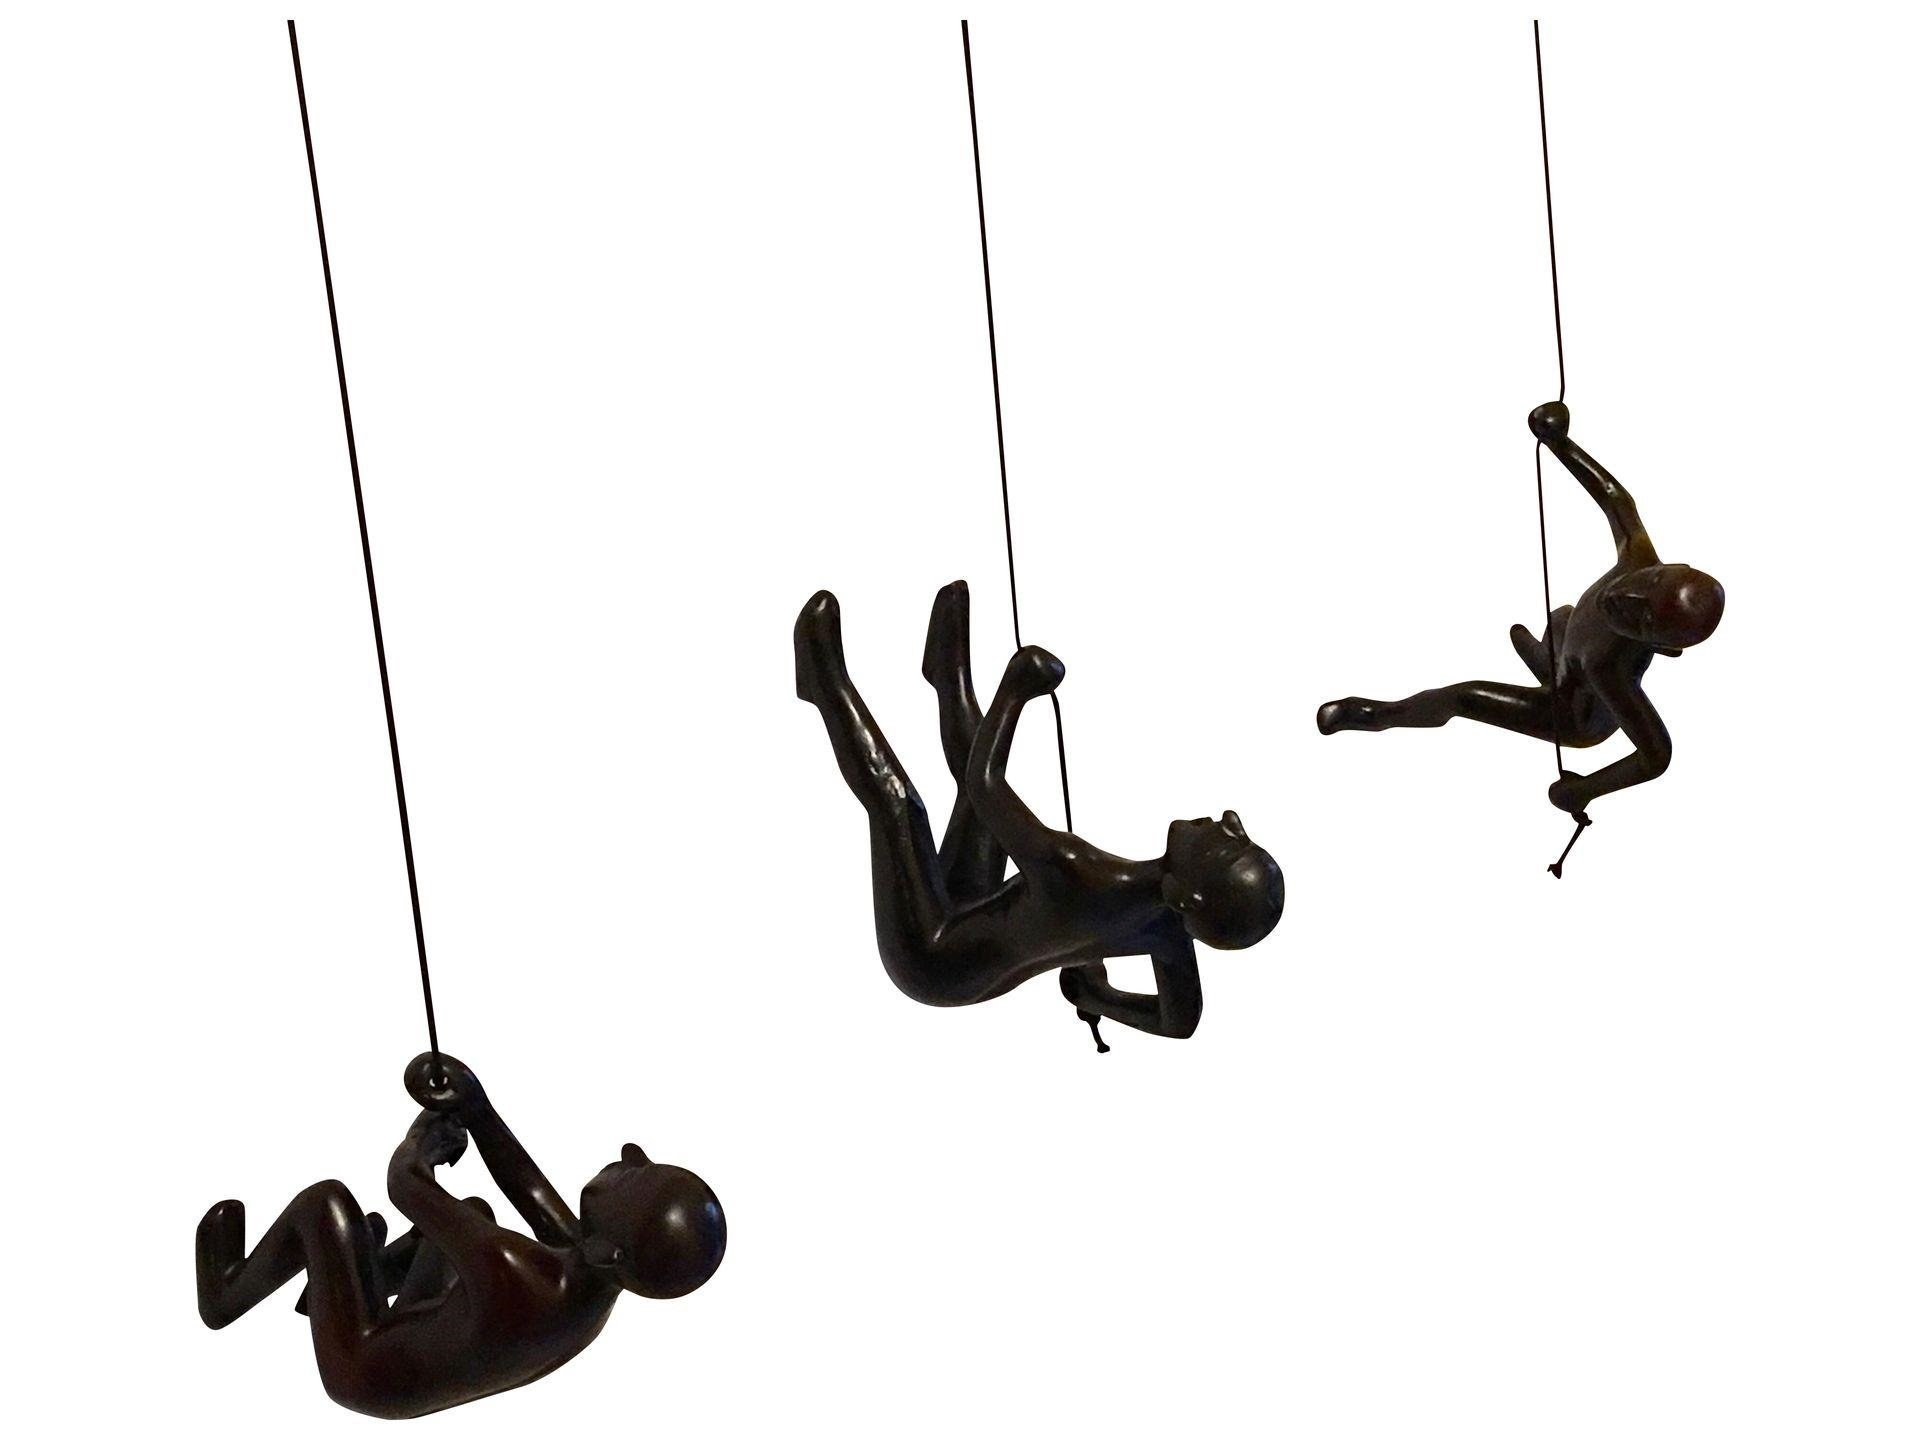 Climbing Man Choco Position 1 - 2 - 3 Hanging Wall Piece Of Art By ELADITEMS – Solid, Durable Polyresin Construction – Handmade, Highly Motivational Home Décor Item